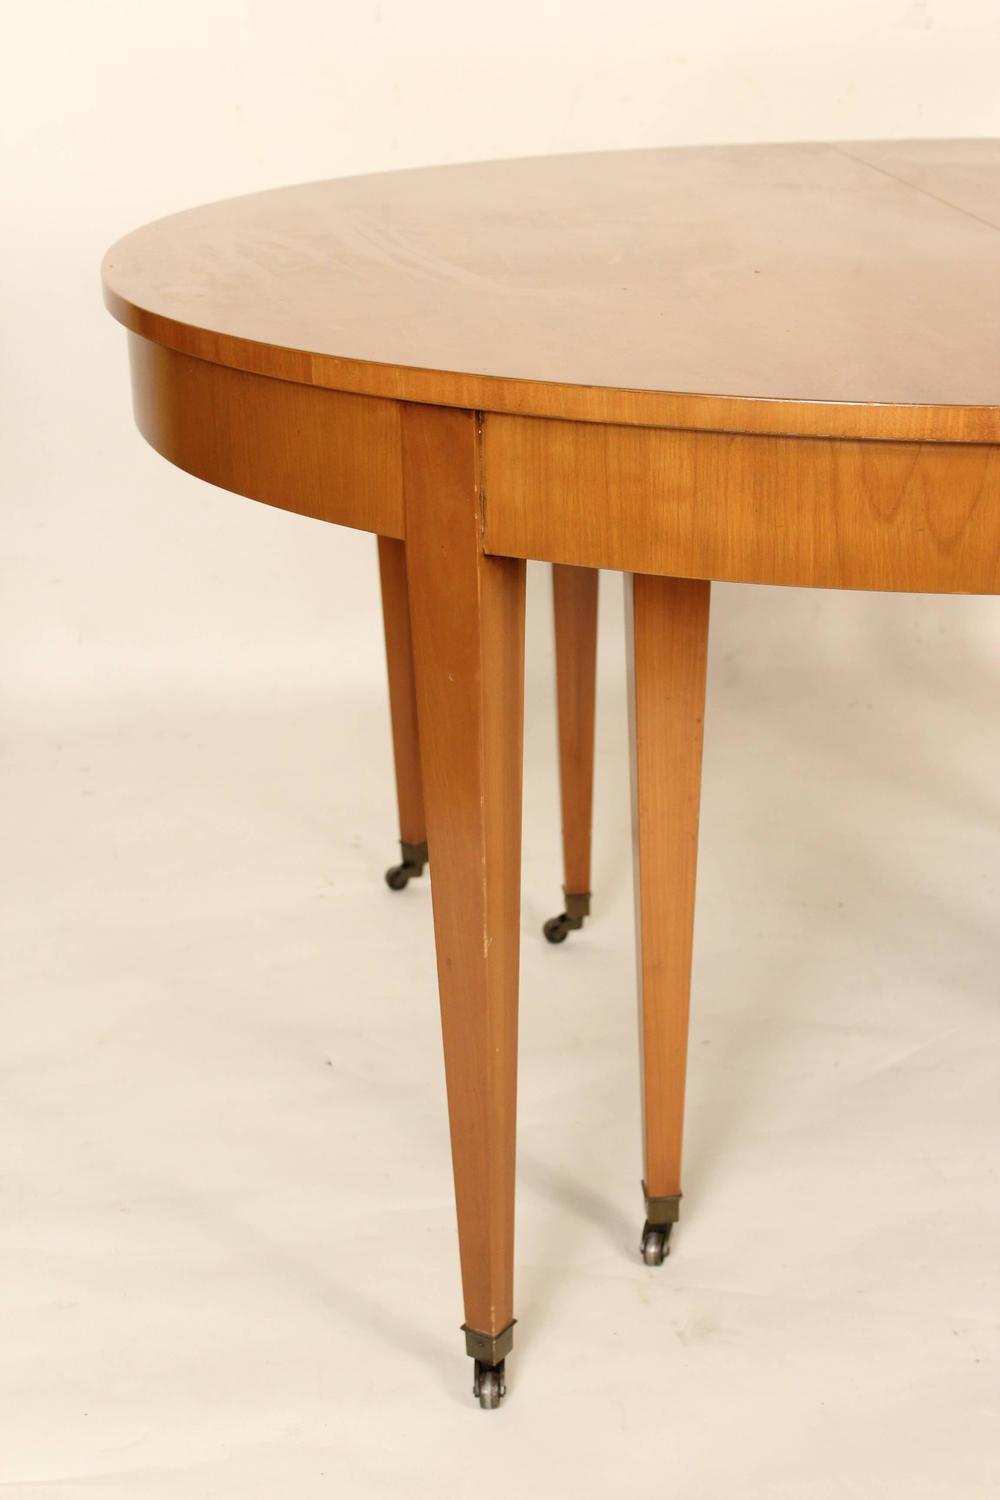 biedermeier style dining table by baker and four chairs at 1stdibs